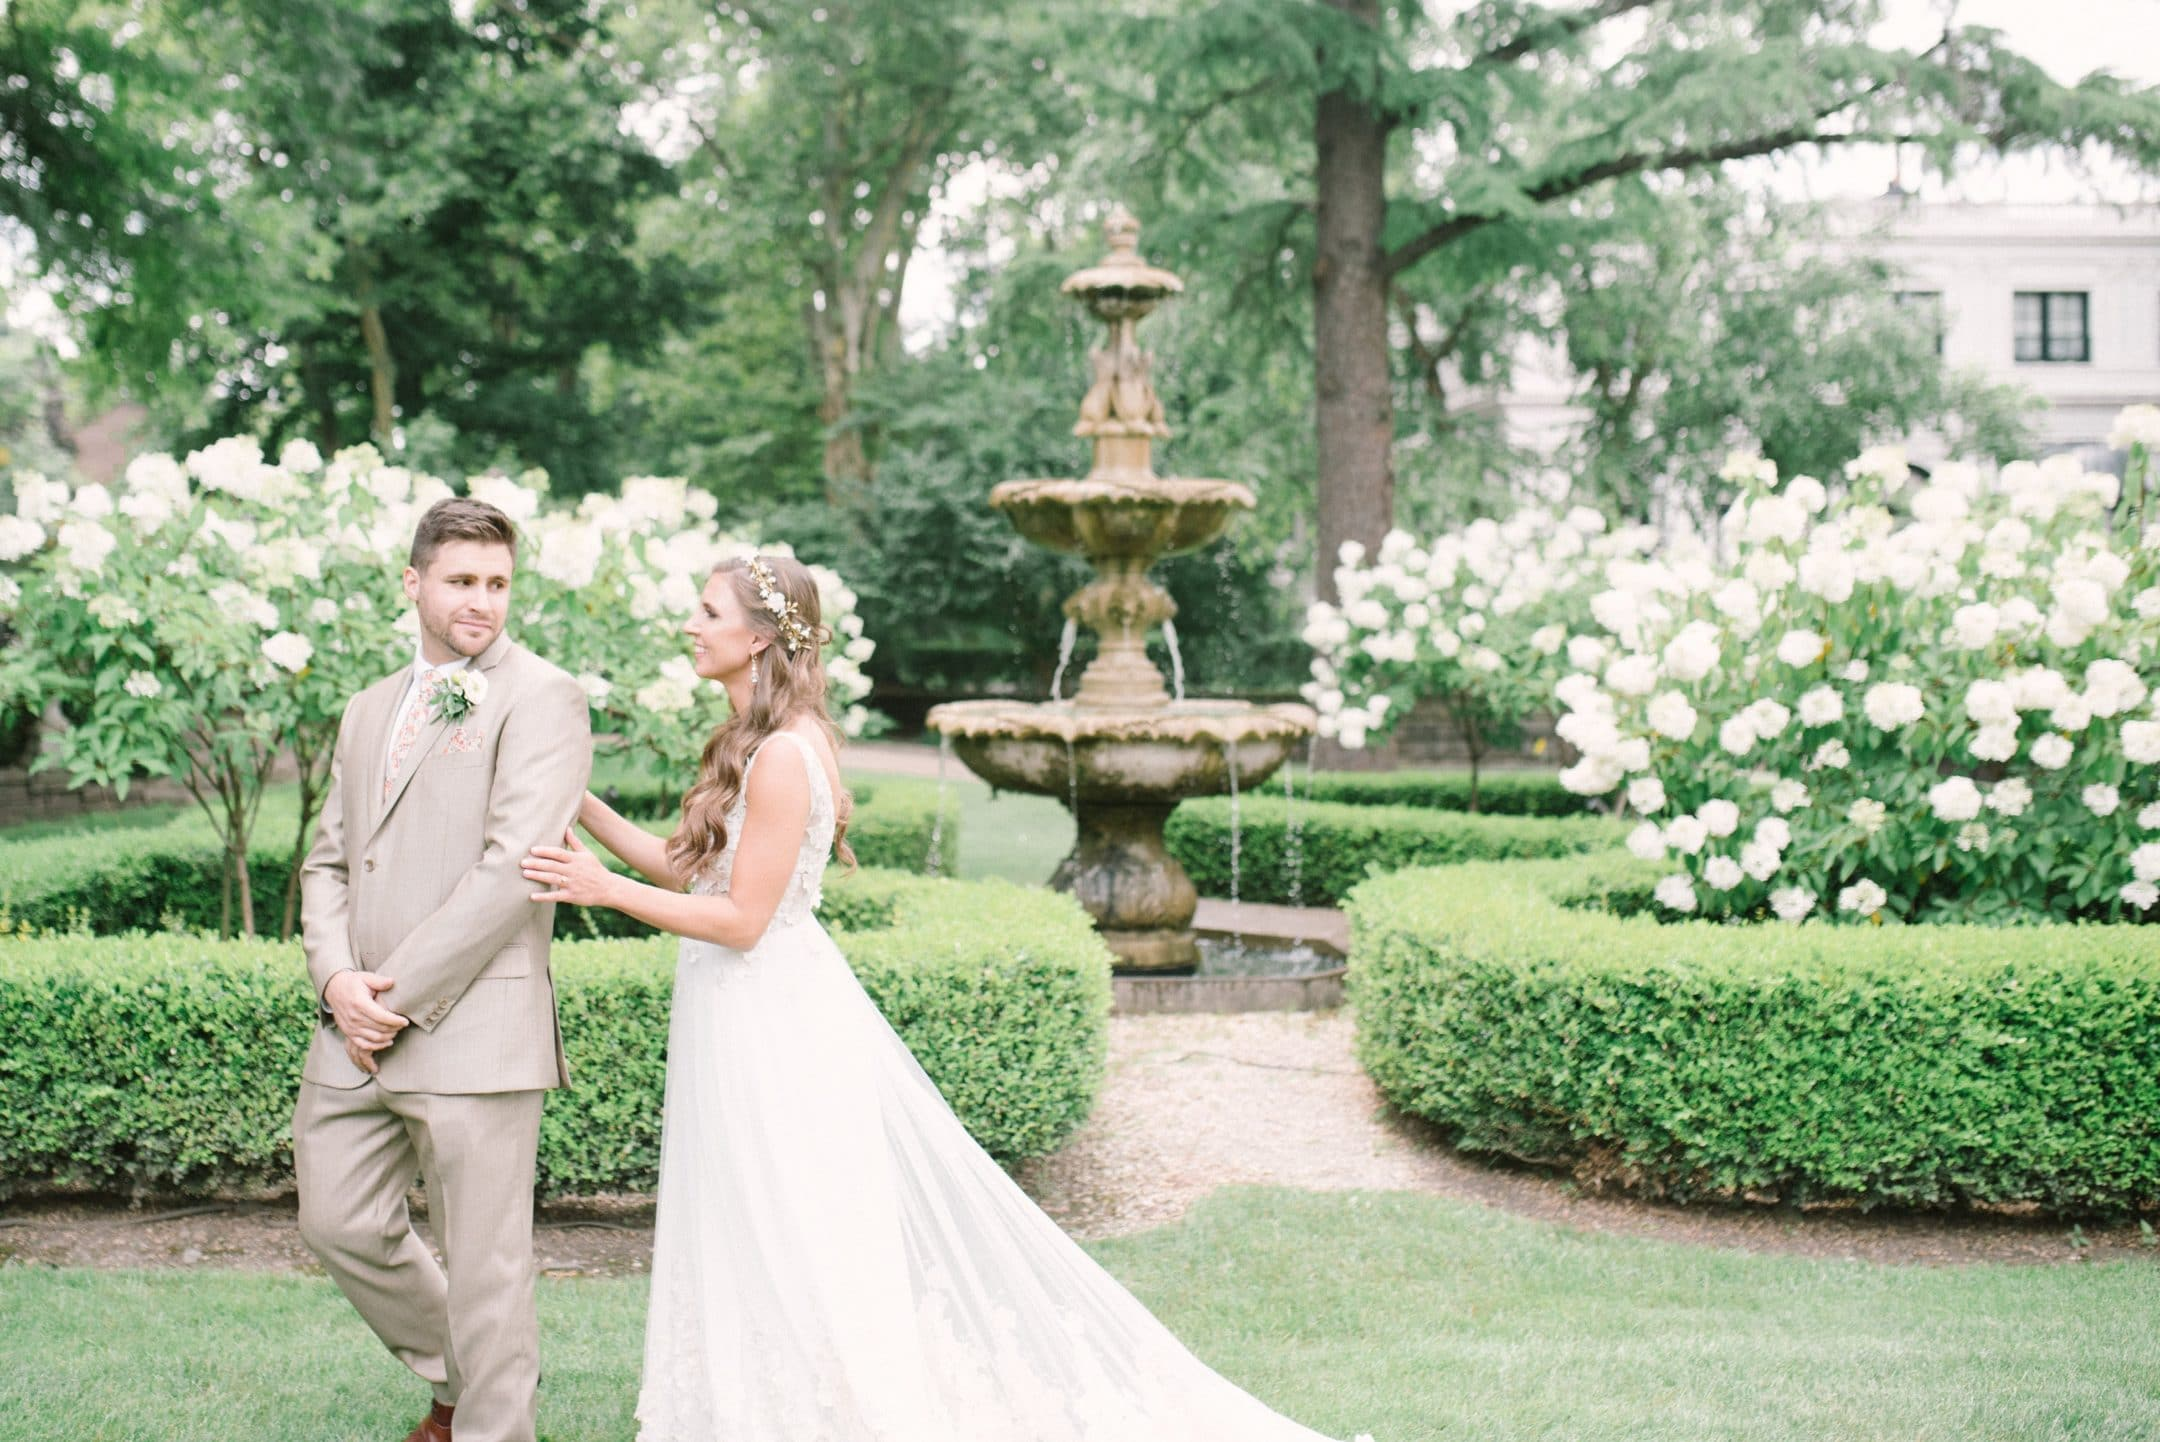 Bride and groom at botanical garden